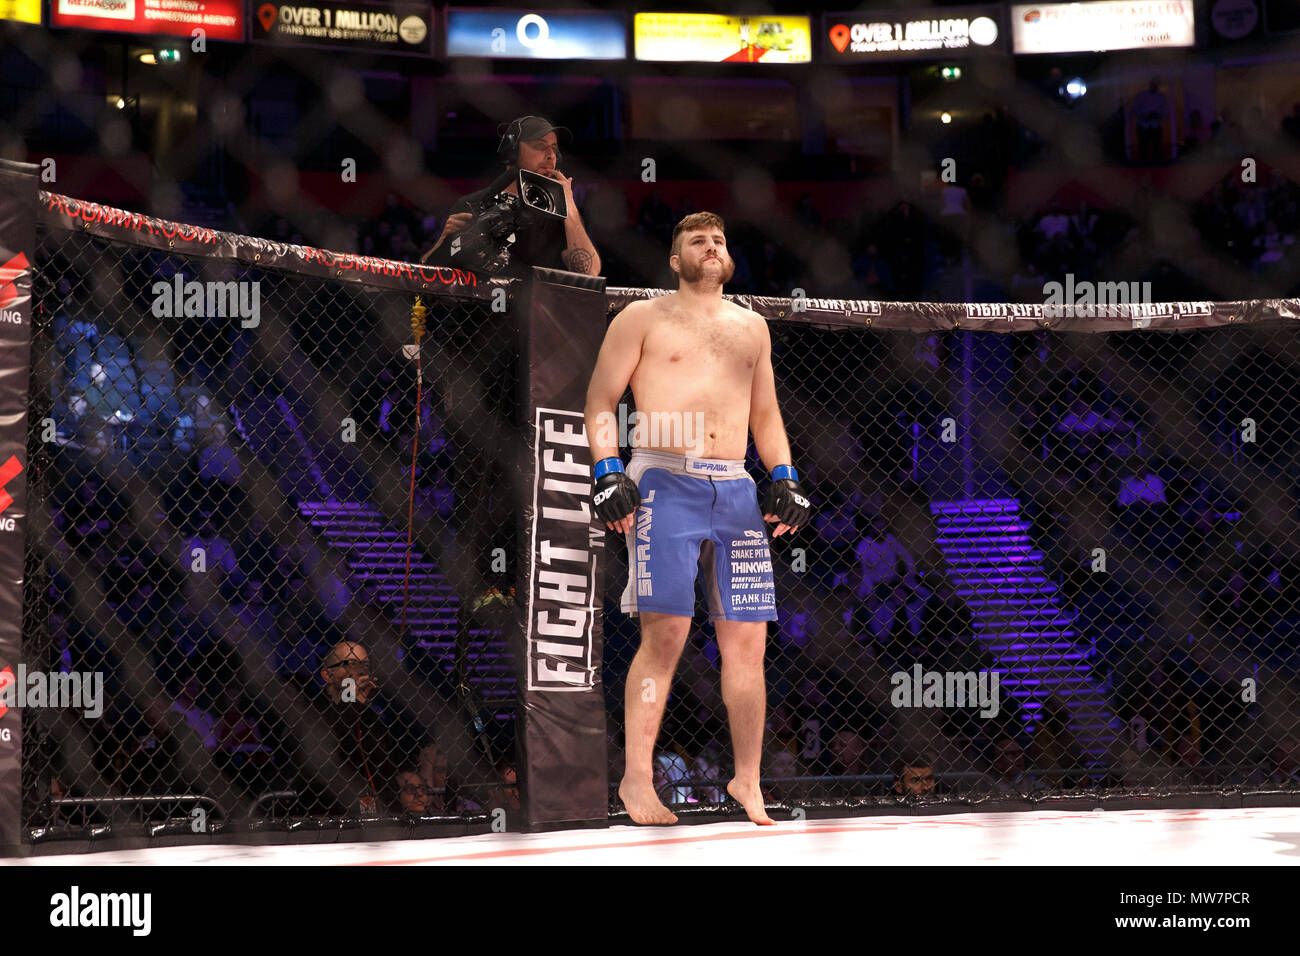 Tanner Boser, Canadian heavyweight Mixed Martial Artist, ahead of his fight at ACB 54 (Absolute Championship Berkut) in Manchester, UK. Mixed Martial Arts, MMA. - Stock Image